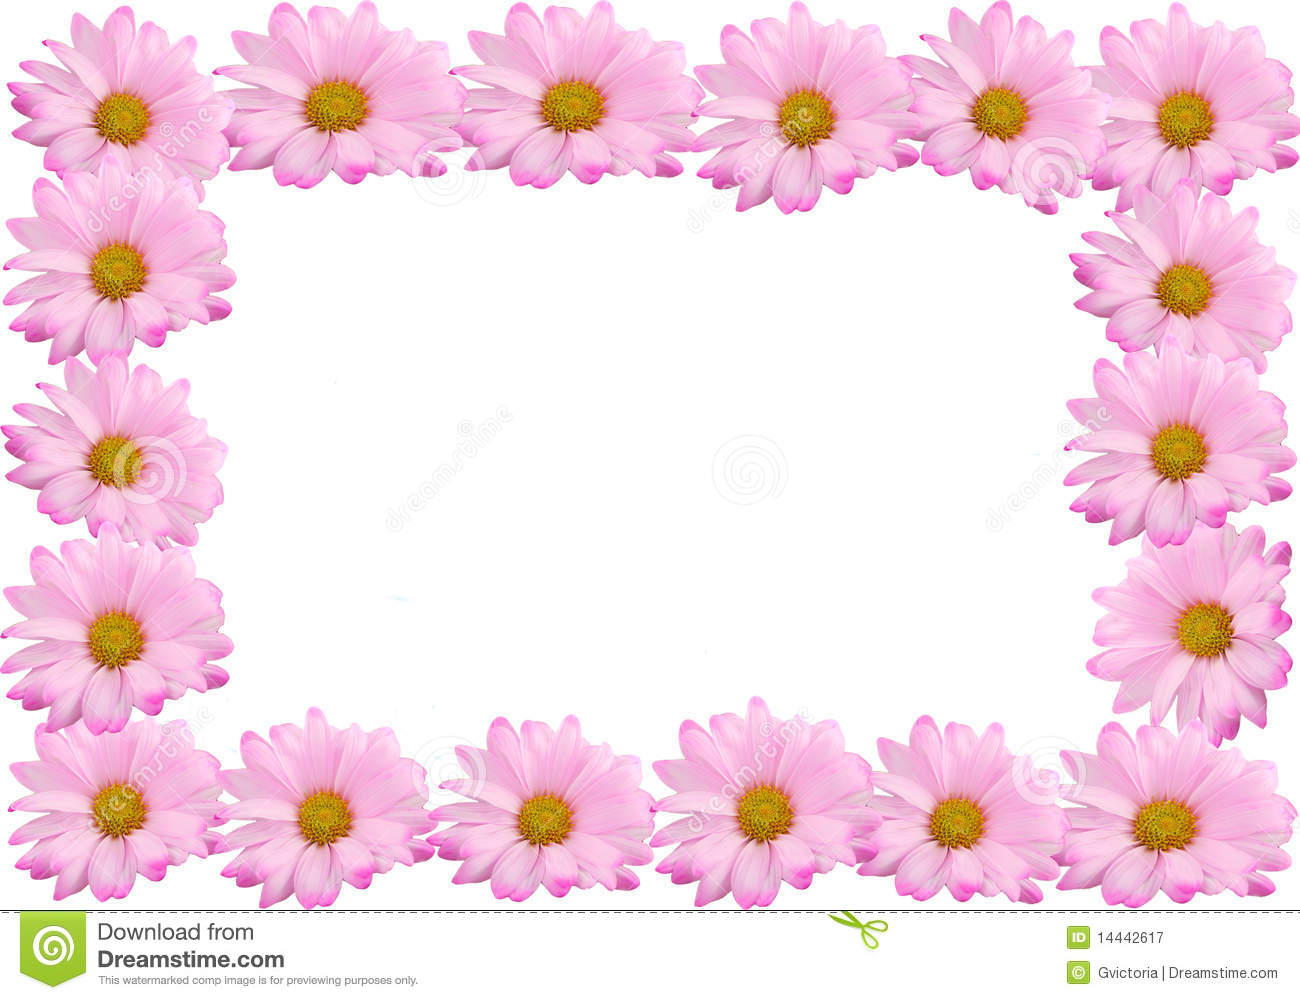 Pink daisy frame or border stock image image of flower 14442617 pink daisy frame or border izmirmasajfo